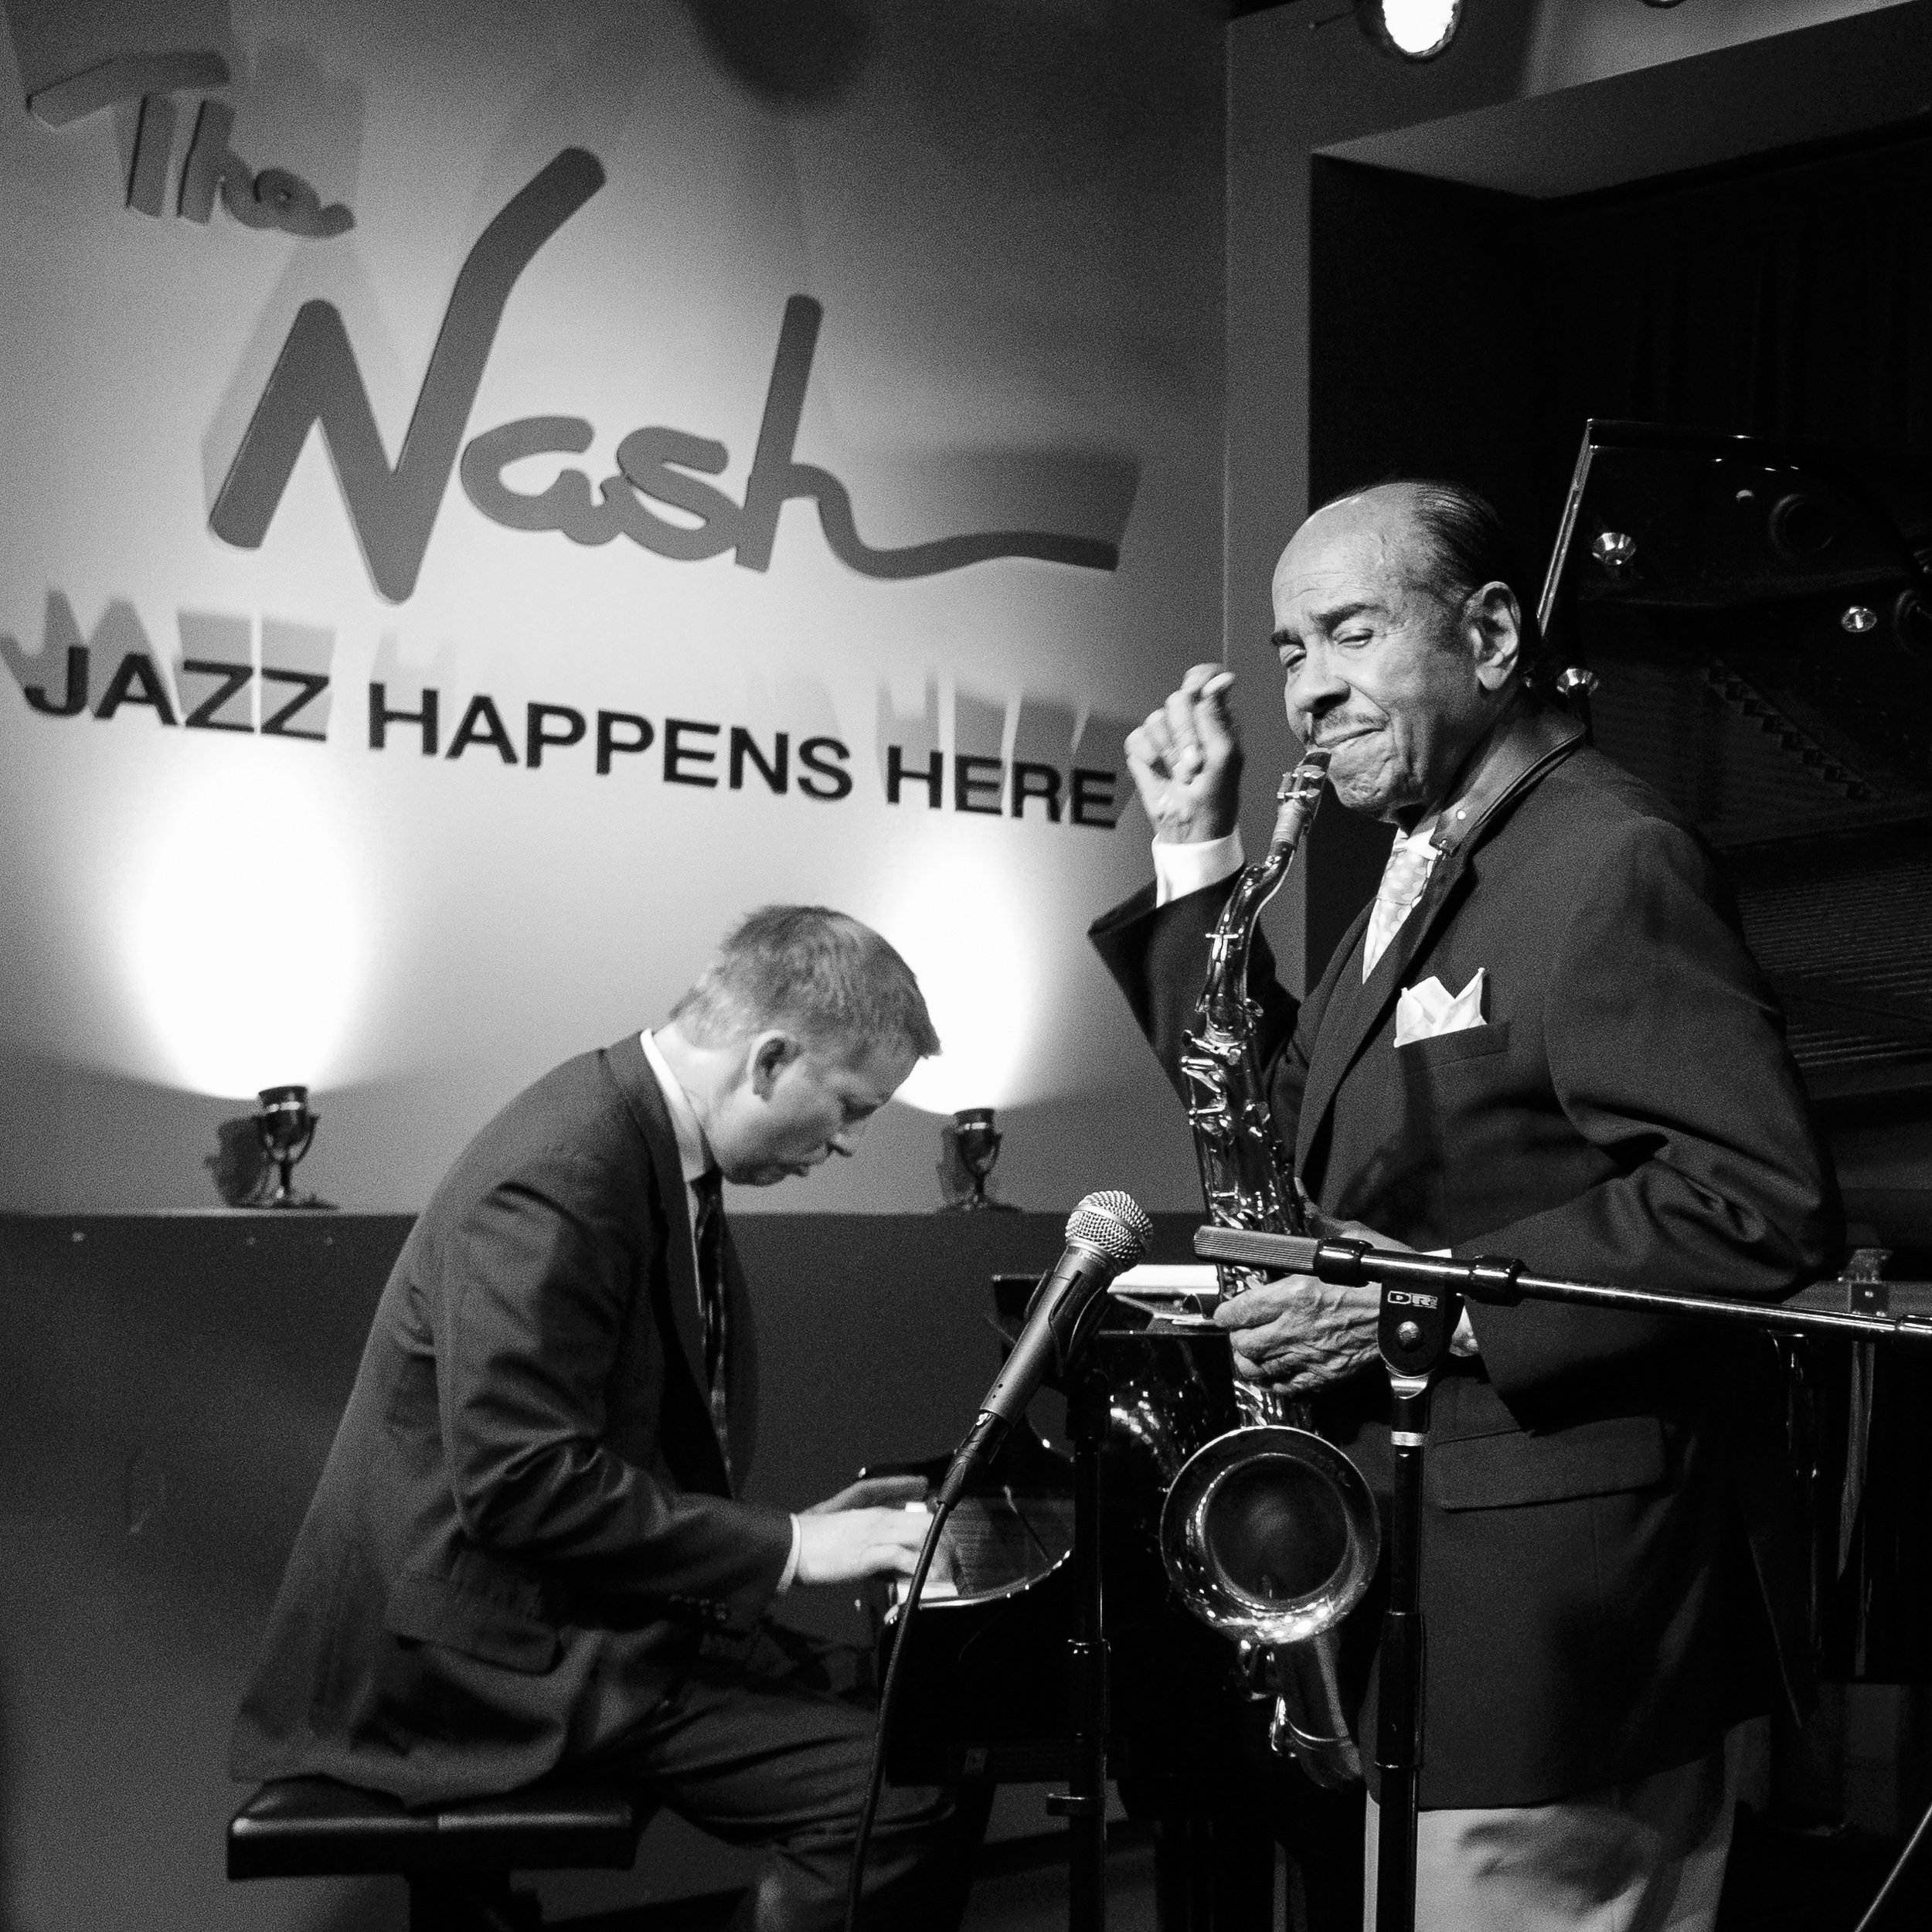 Benny Golson and Mike Kocour at The Nash